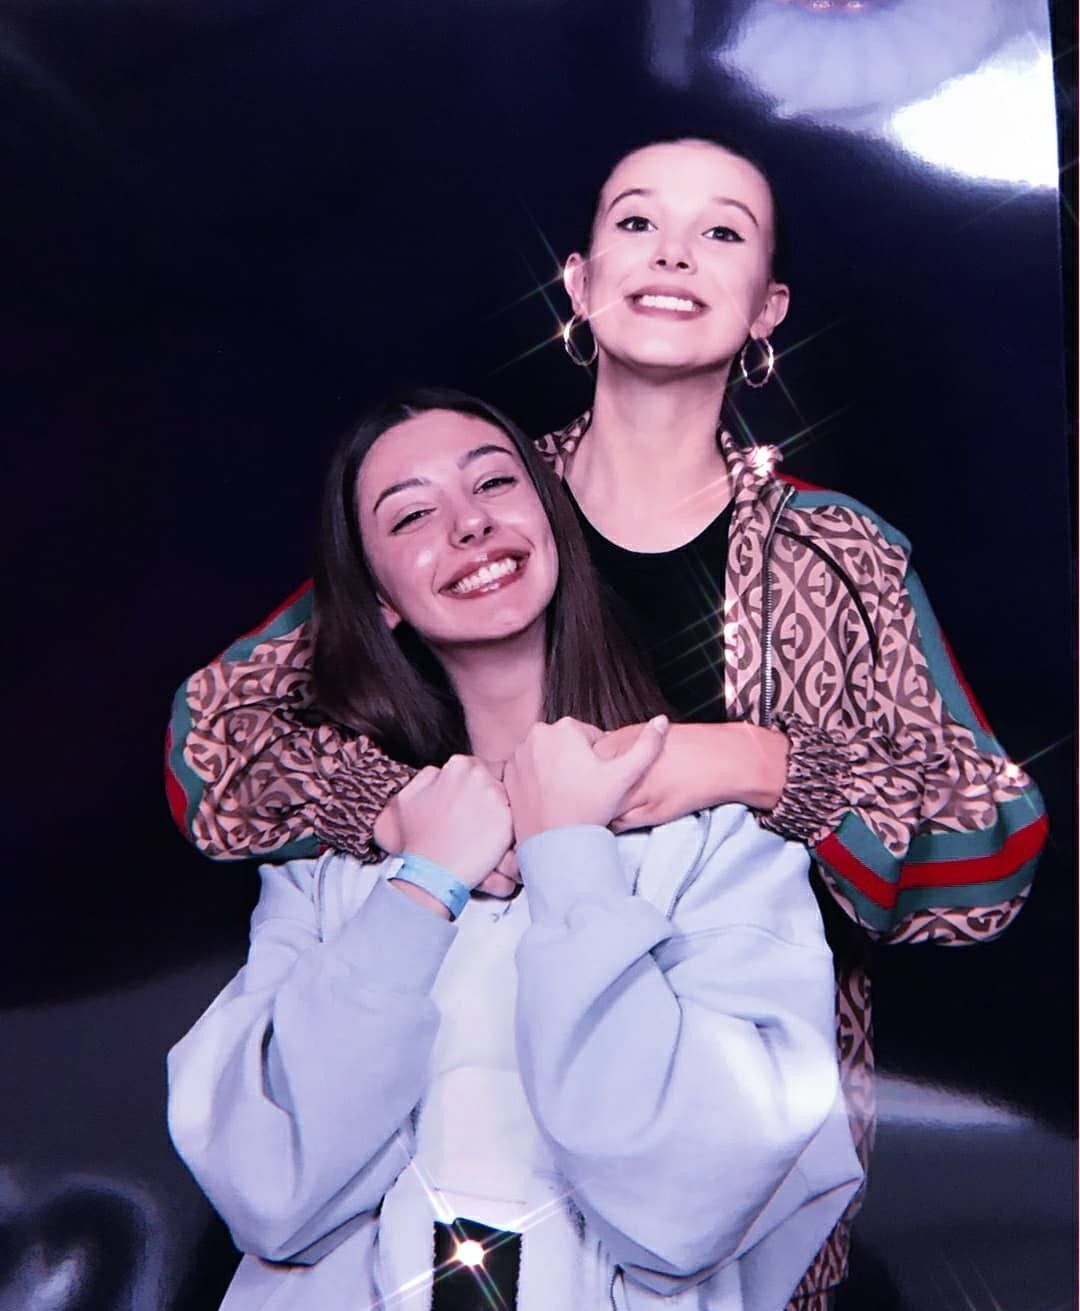 Pin By Mina On Millie Bobby Brown Bobby Brown Millie Bobby Brown Bobby